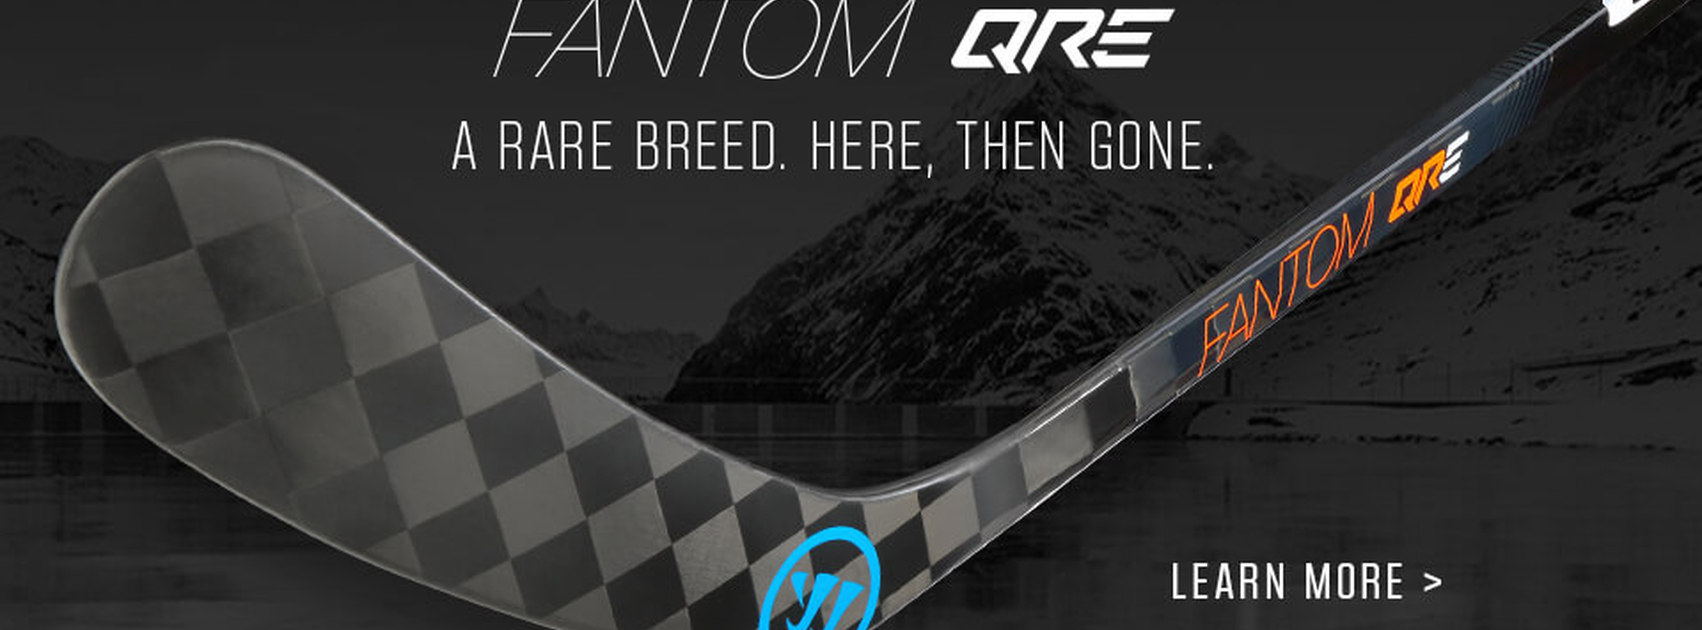 WARRIOR FANTOM QRE...Launches May 24th